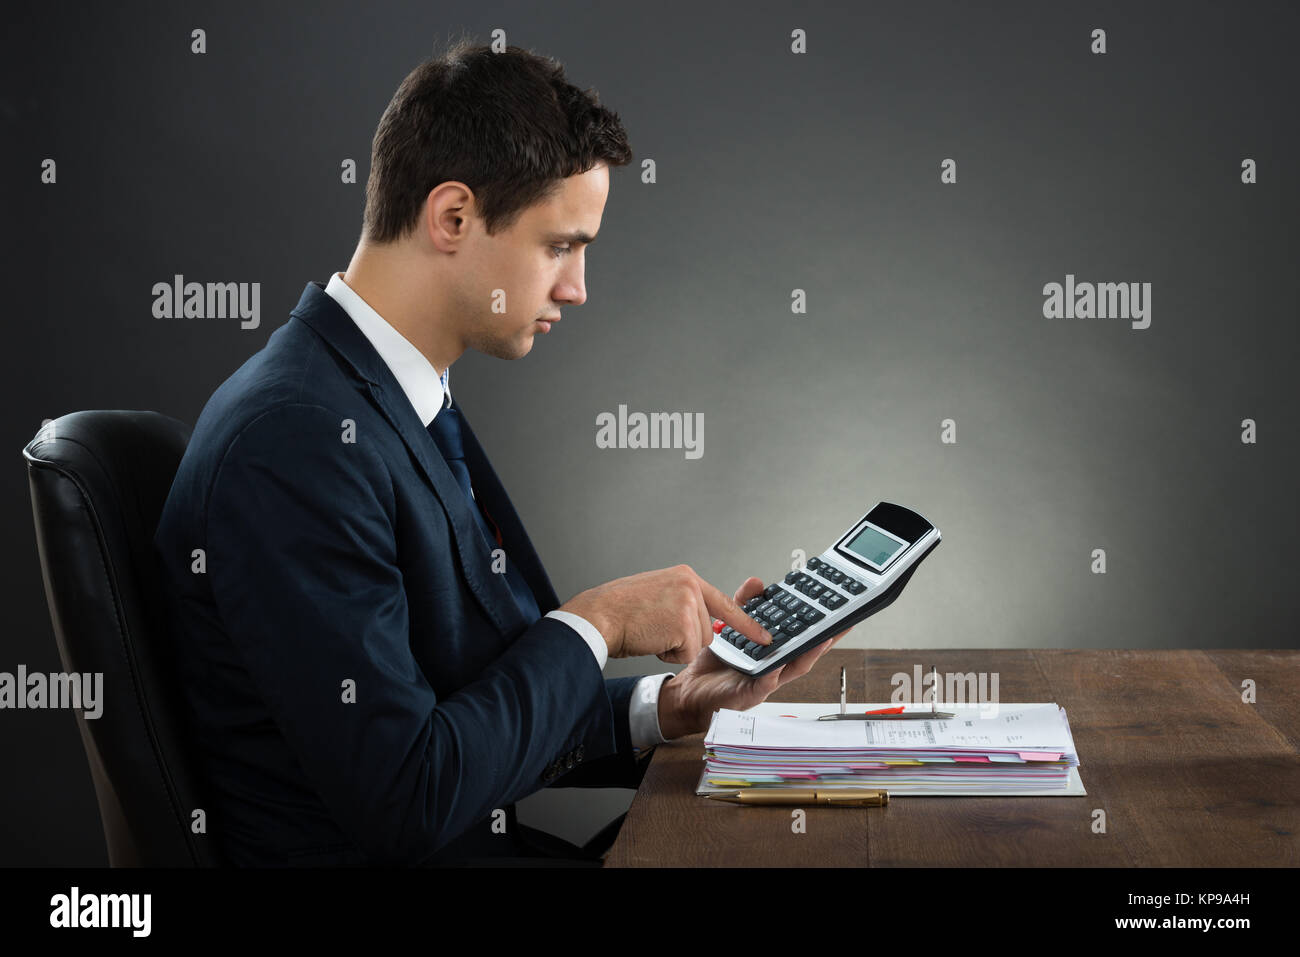 Businessman Using Calculator While Checking Invoice At Desk Stock Photo